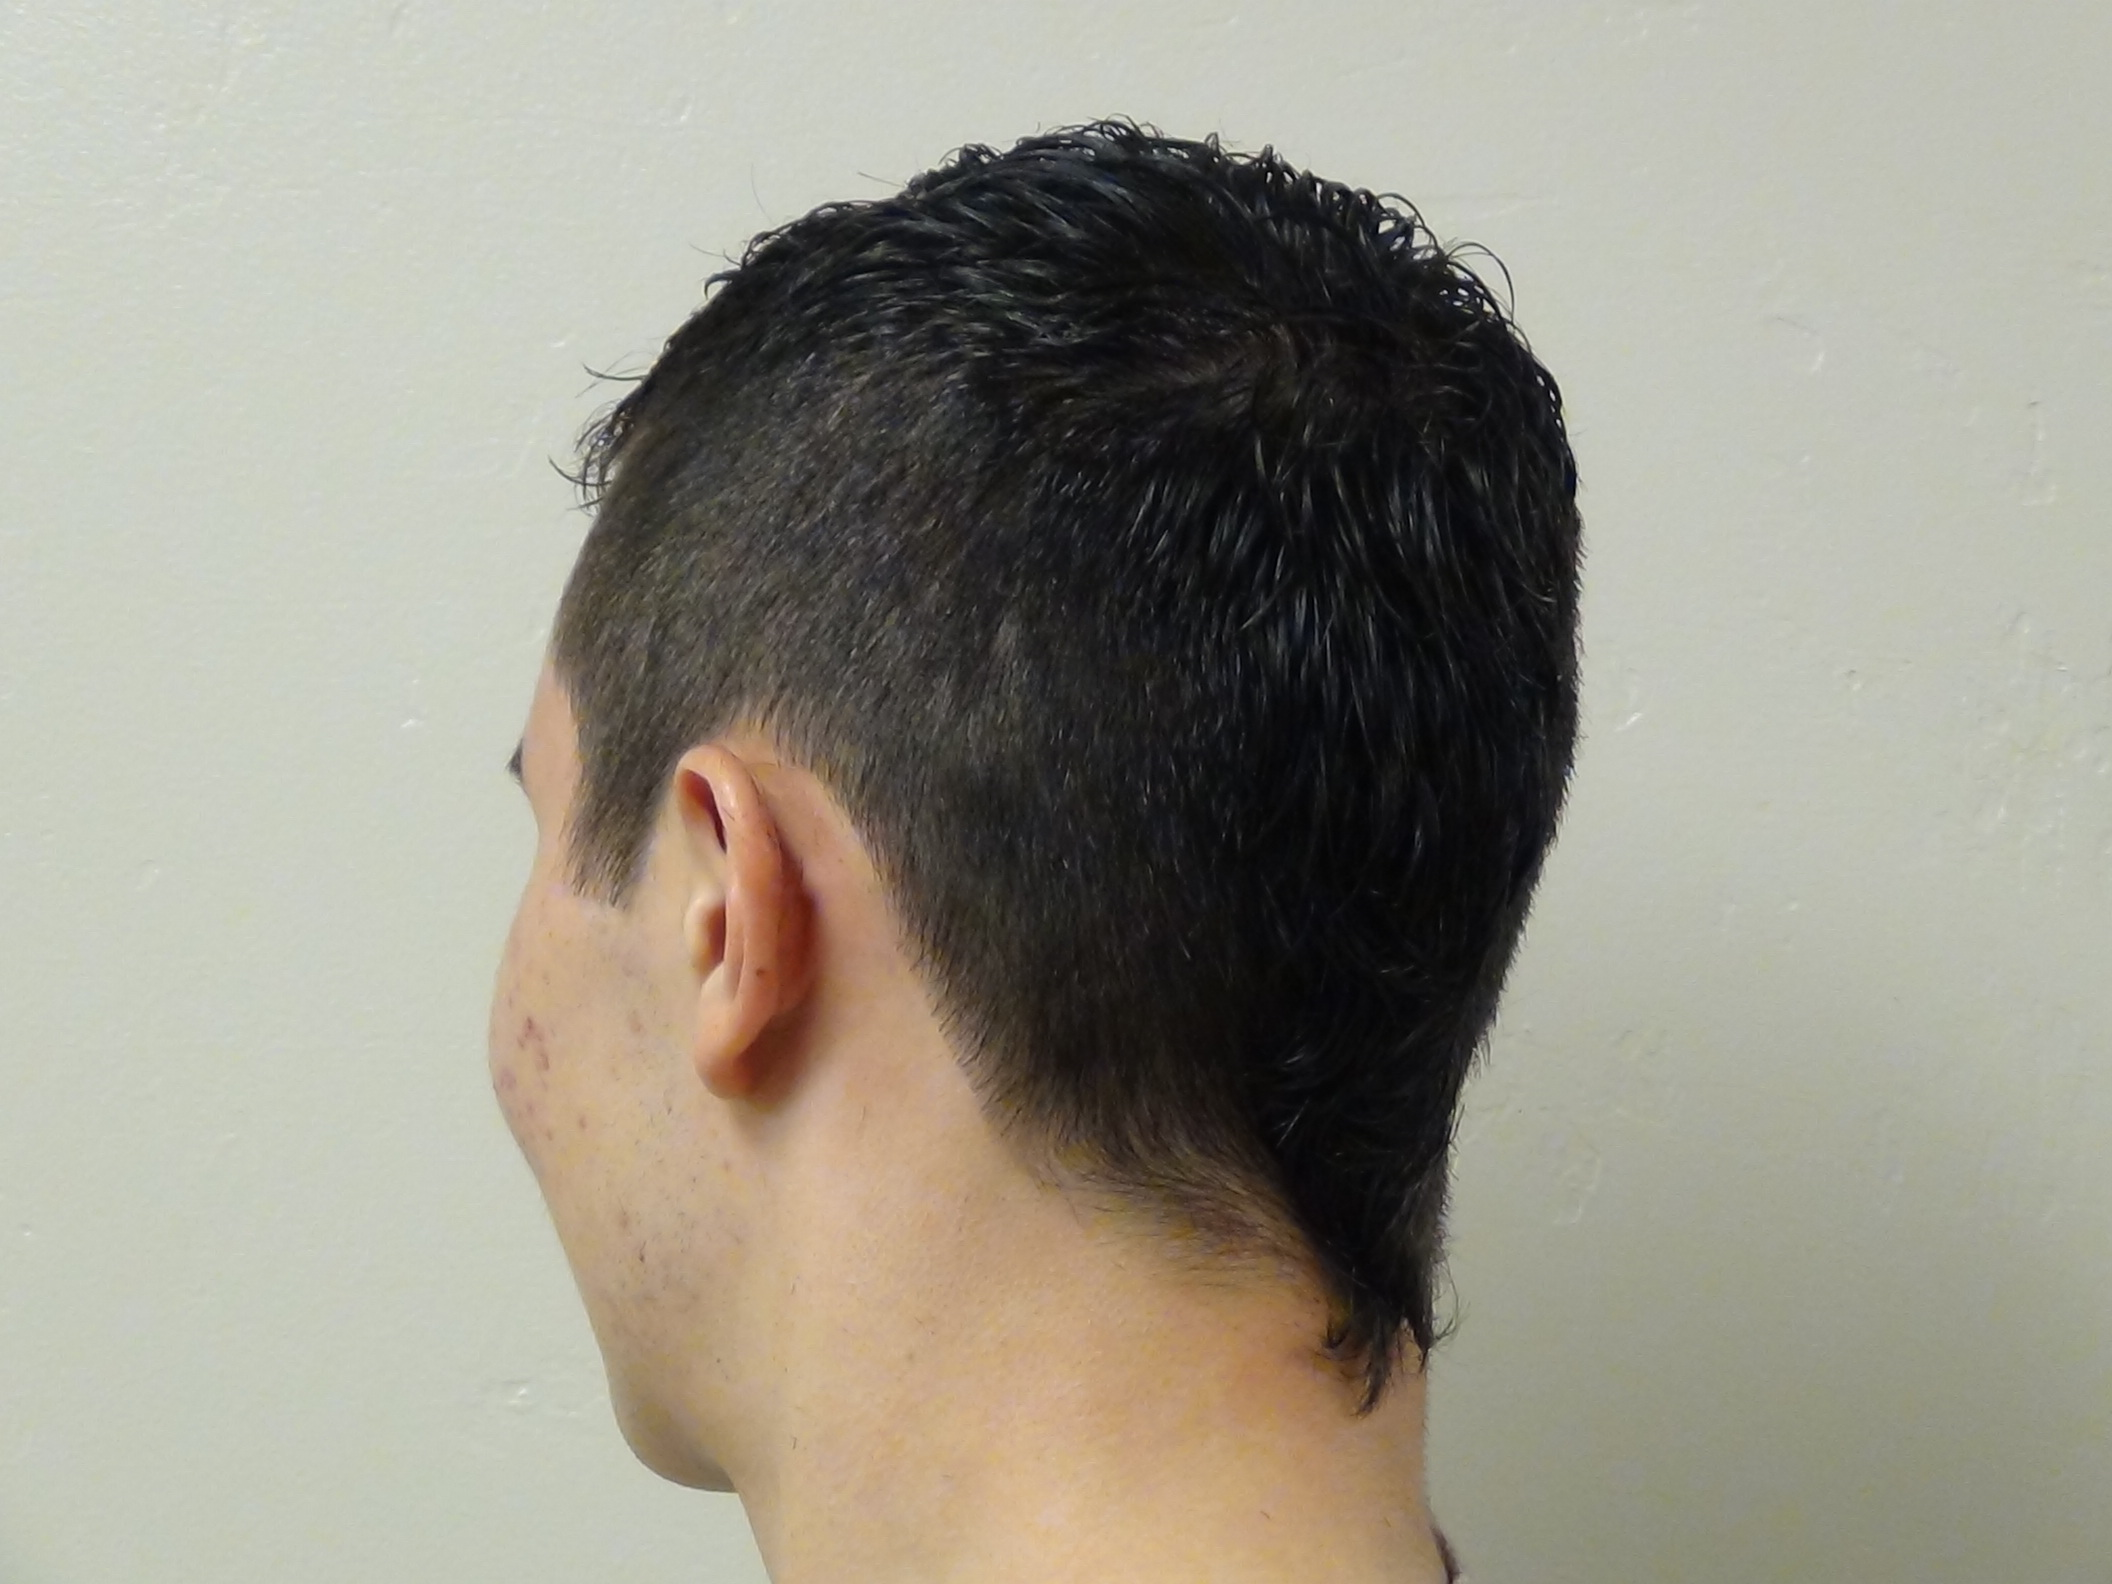 Stupendous Boys Short Haircut With Tail Hairstyle Boys And Girls Hairstyles Schematic Wiring Diagrams Amerangerunnerswayorg